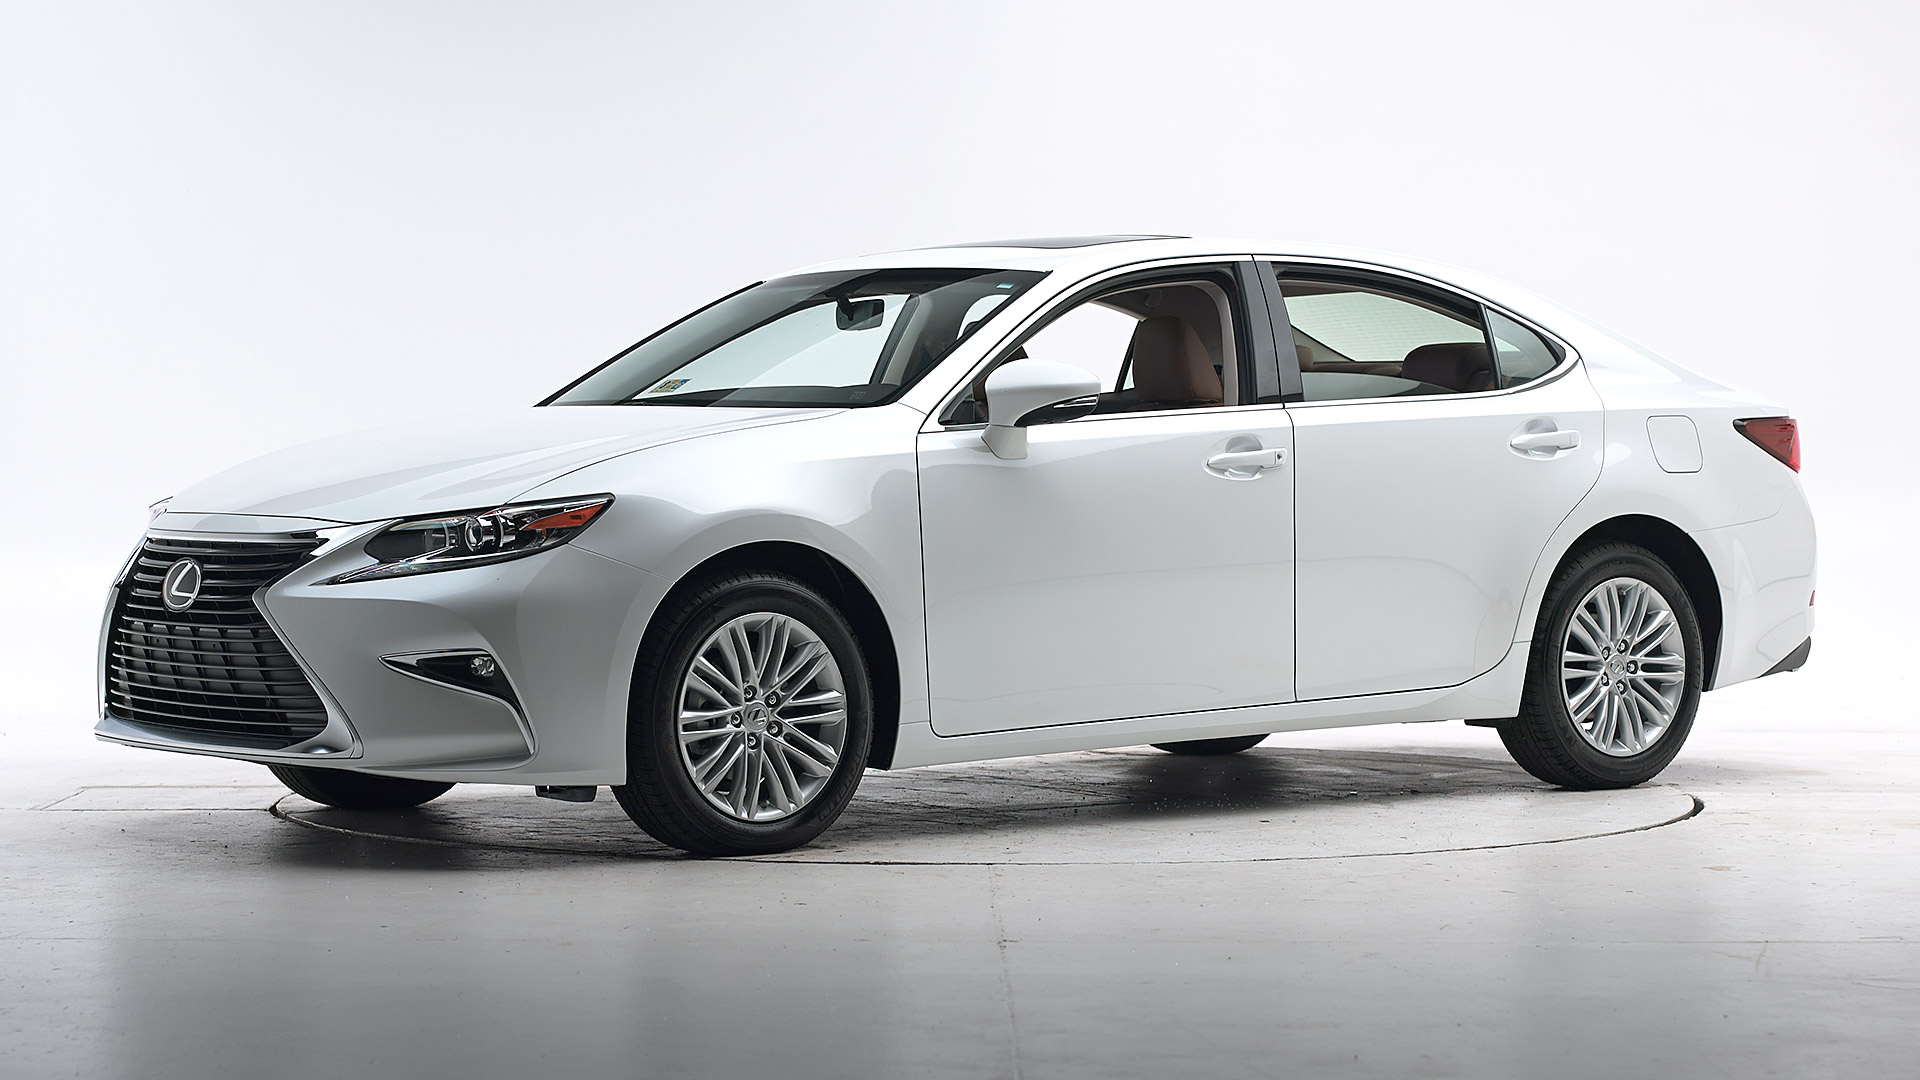 2018 Lexus ES 350 4-door sedan